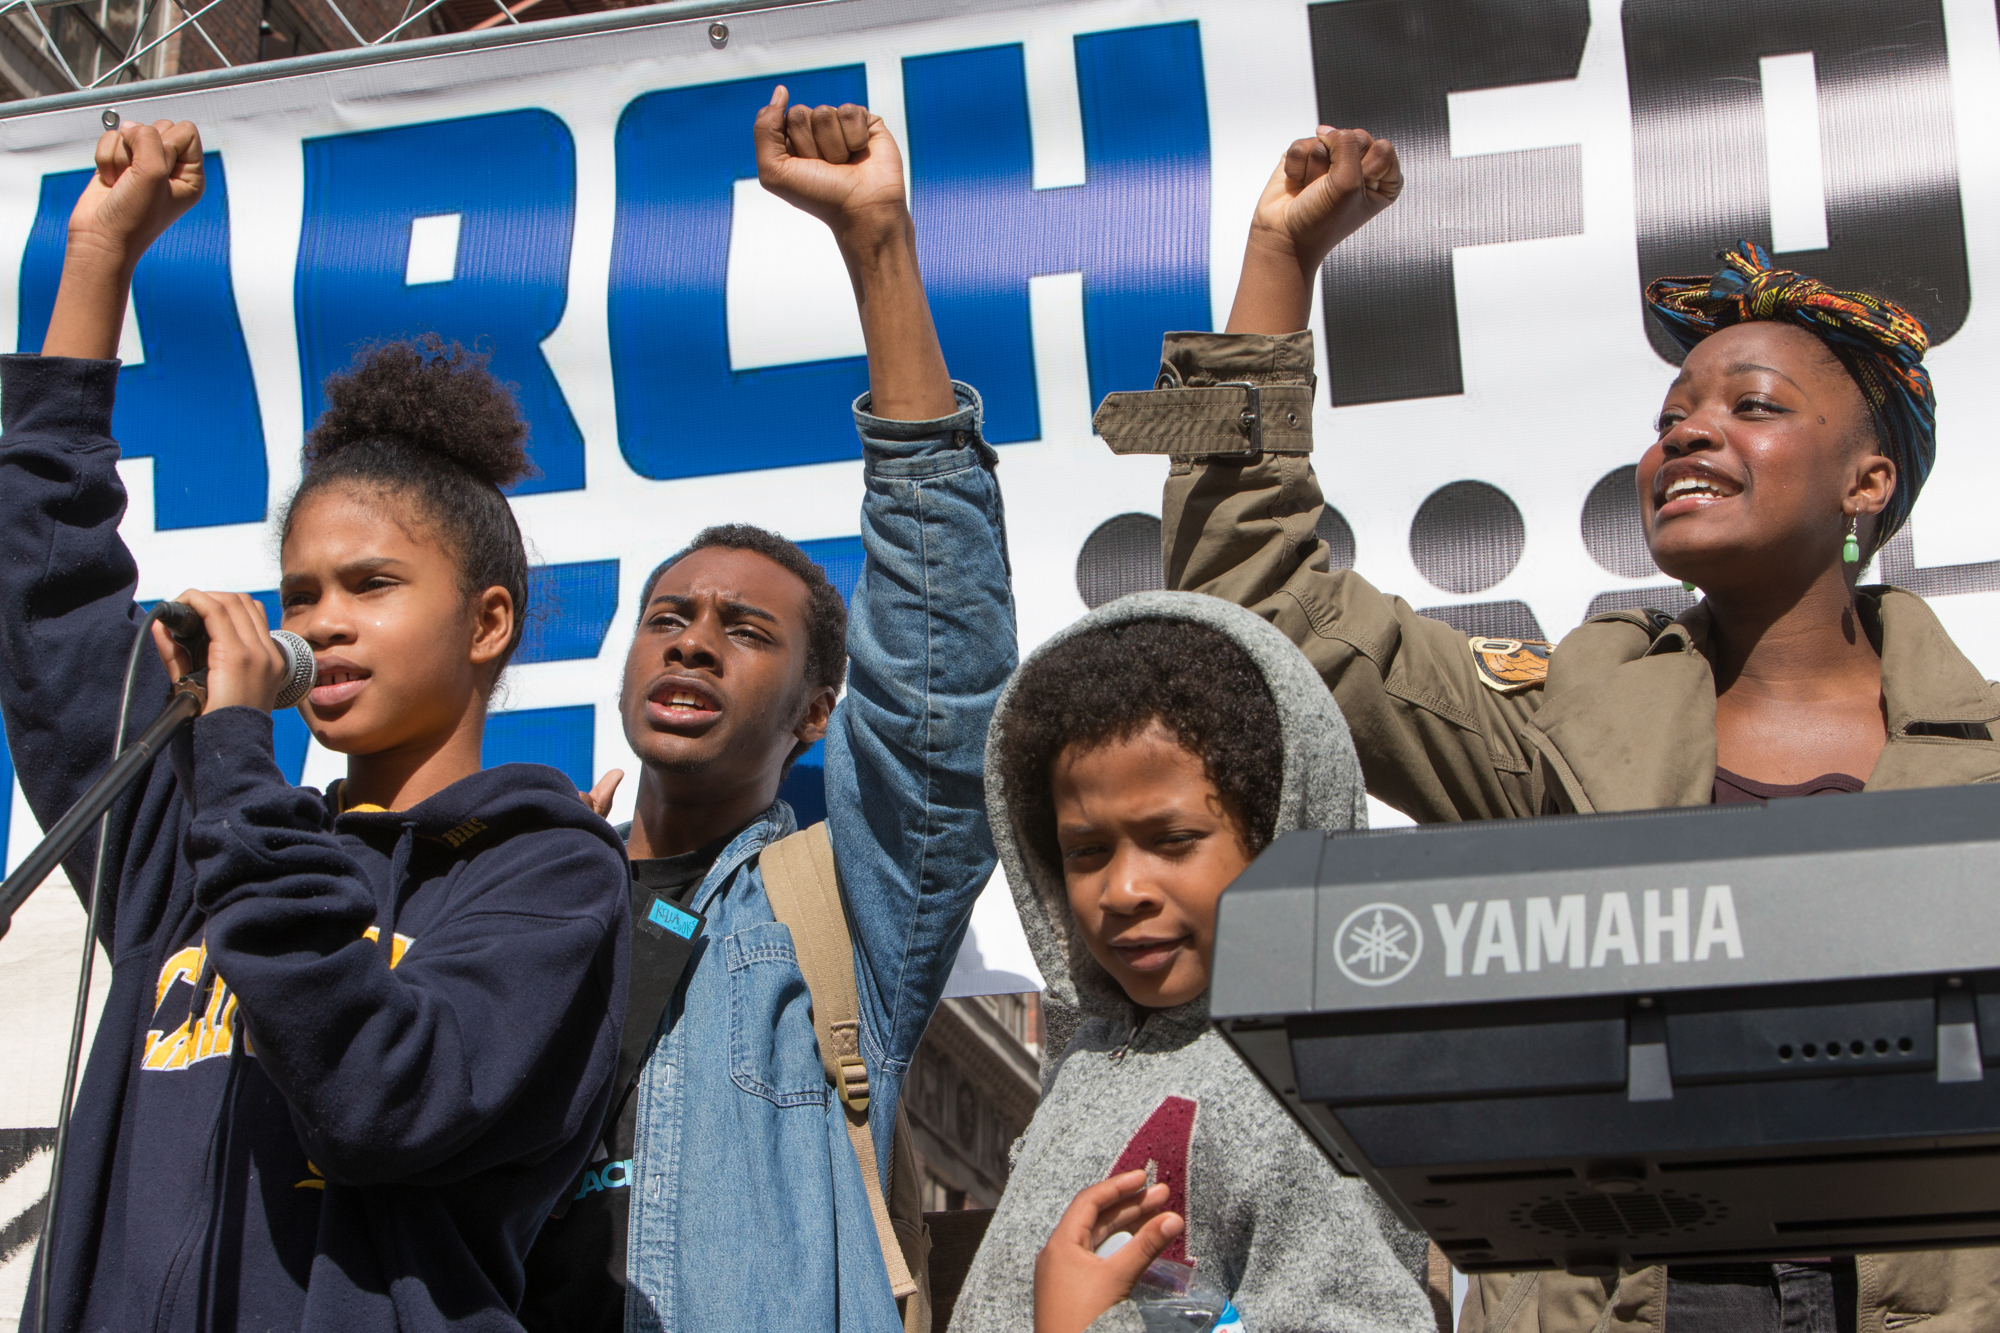 A group of young student activists, stand at the podium on 5th and Broadway in downtown Los Angeles, before marching to City Hall during the March for Our Lives rally on March 24, 2018, in Los Angeles, California. (Daniel Bowyer/Corsair Photo)